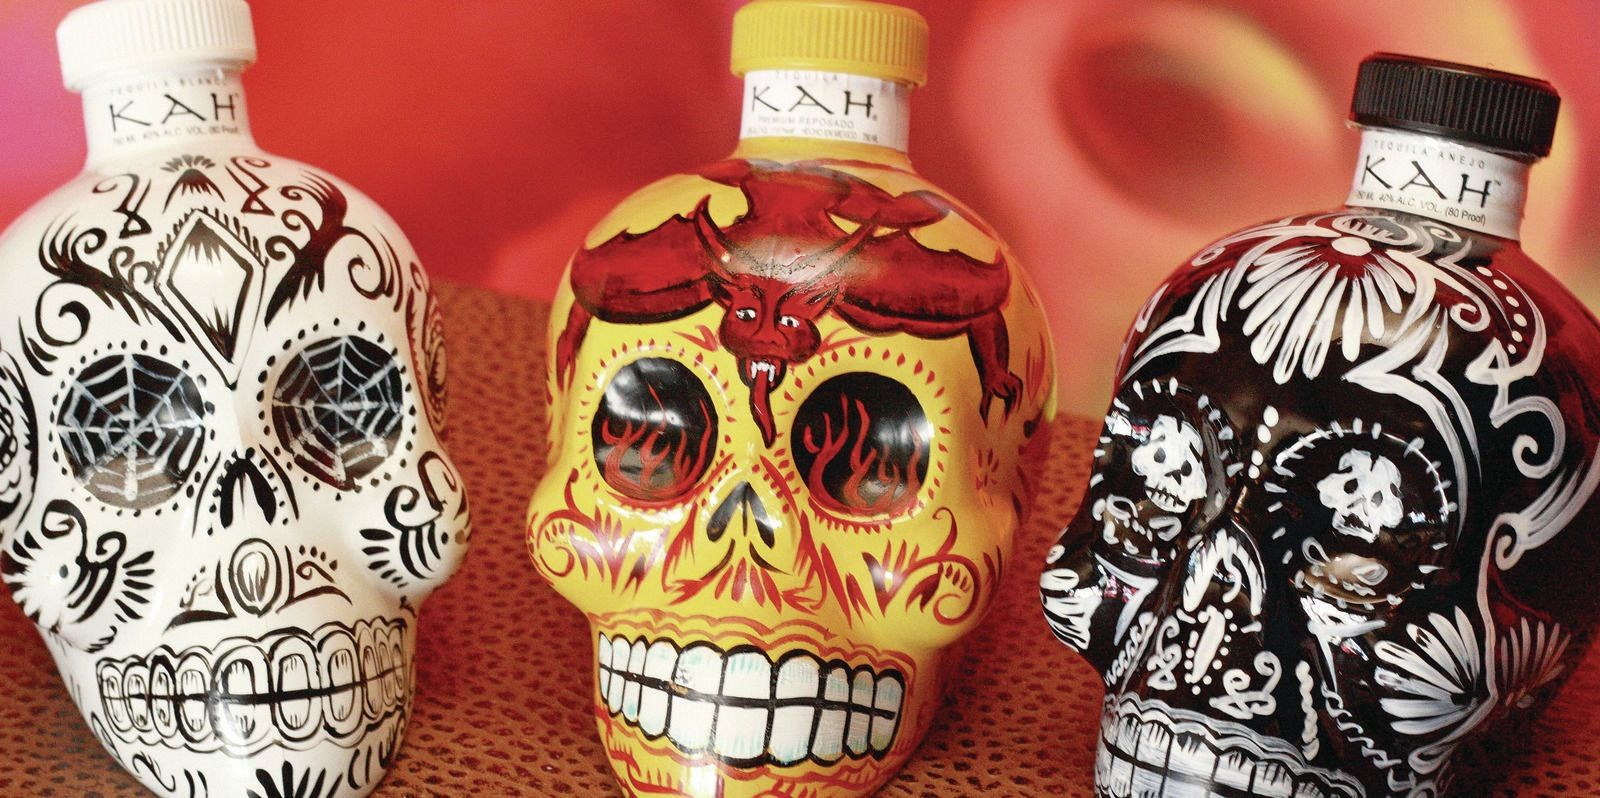 A Little Kah Tequila Anyone Tequila Bottles Tequila Best Tequila